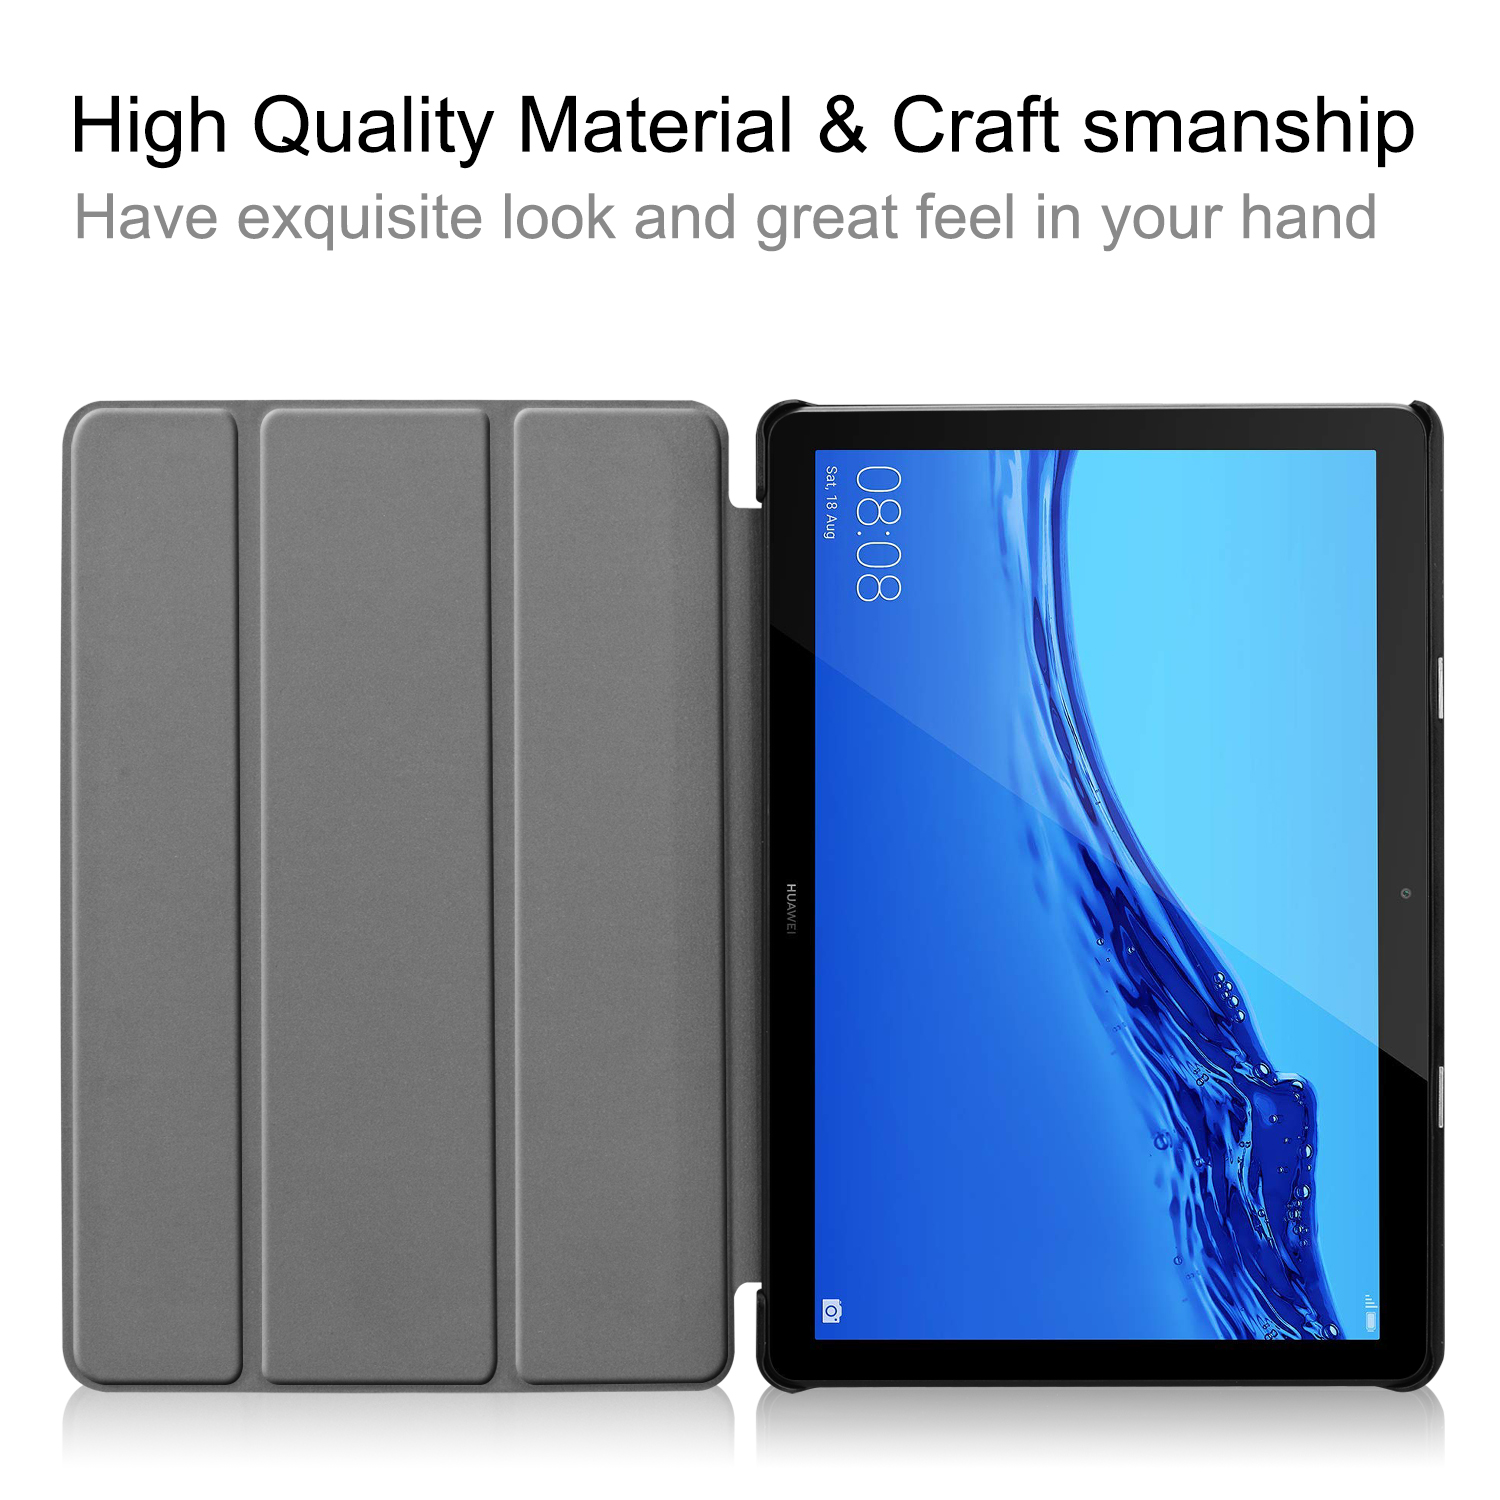 Folding Stand Case For Huawei Mediapad T5 10 Cover For Huawei T5 10 Inch AGS2-W09/L09/L03/W19 Tablet 10.1